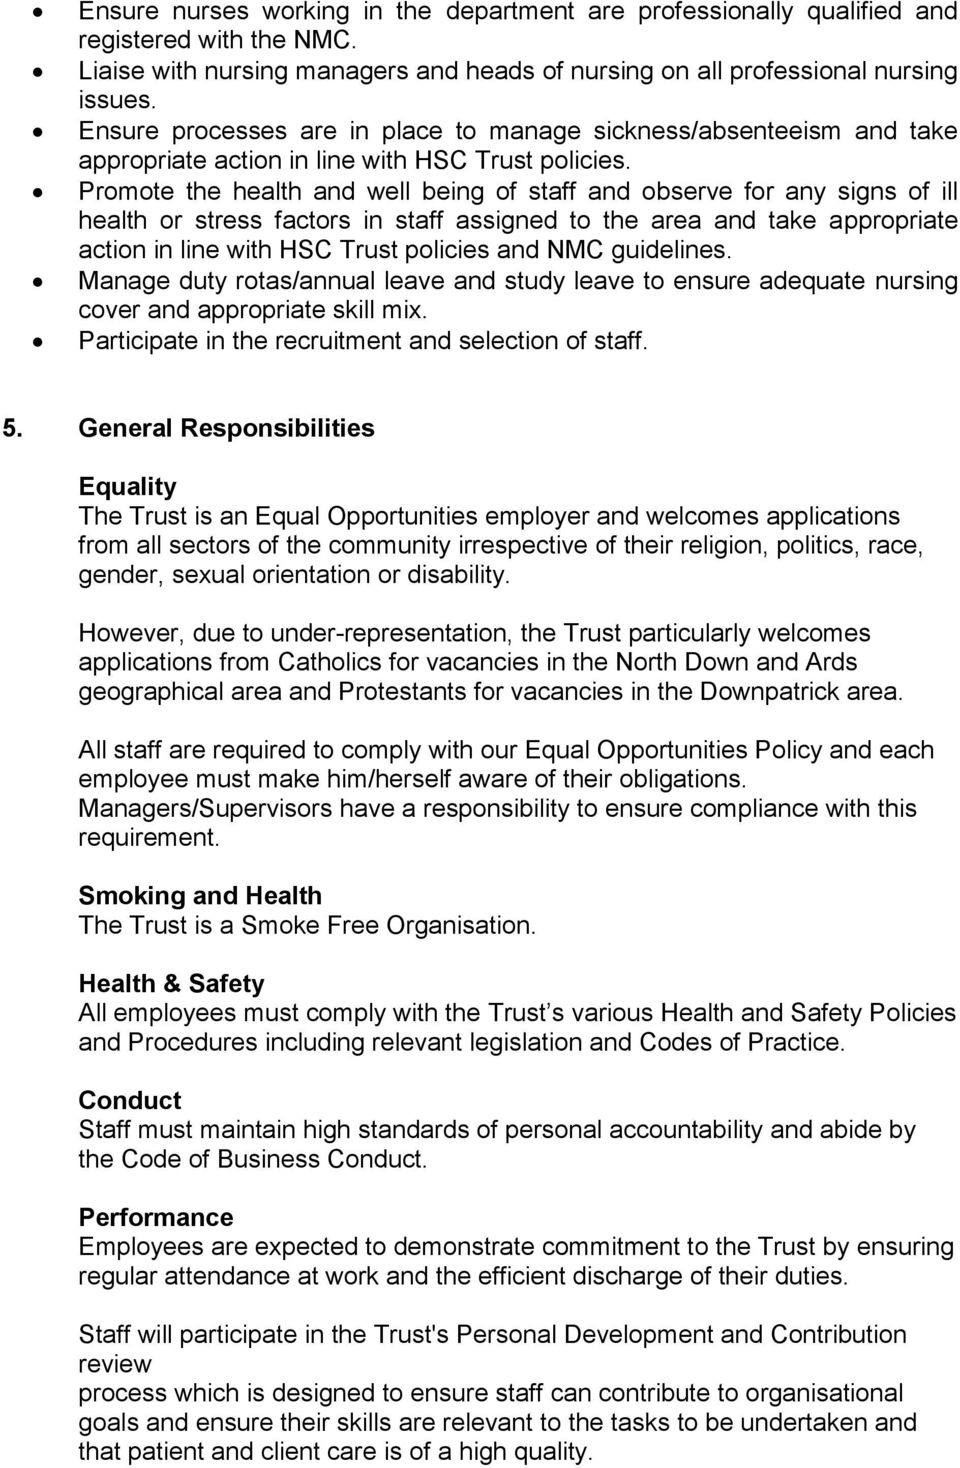 Promote the health and well being of staff and observe for any signs of ill health or stress factors in staff assigned to the area and take appropriate action in line with HSC Trust policies and NMC